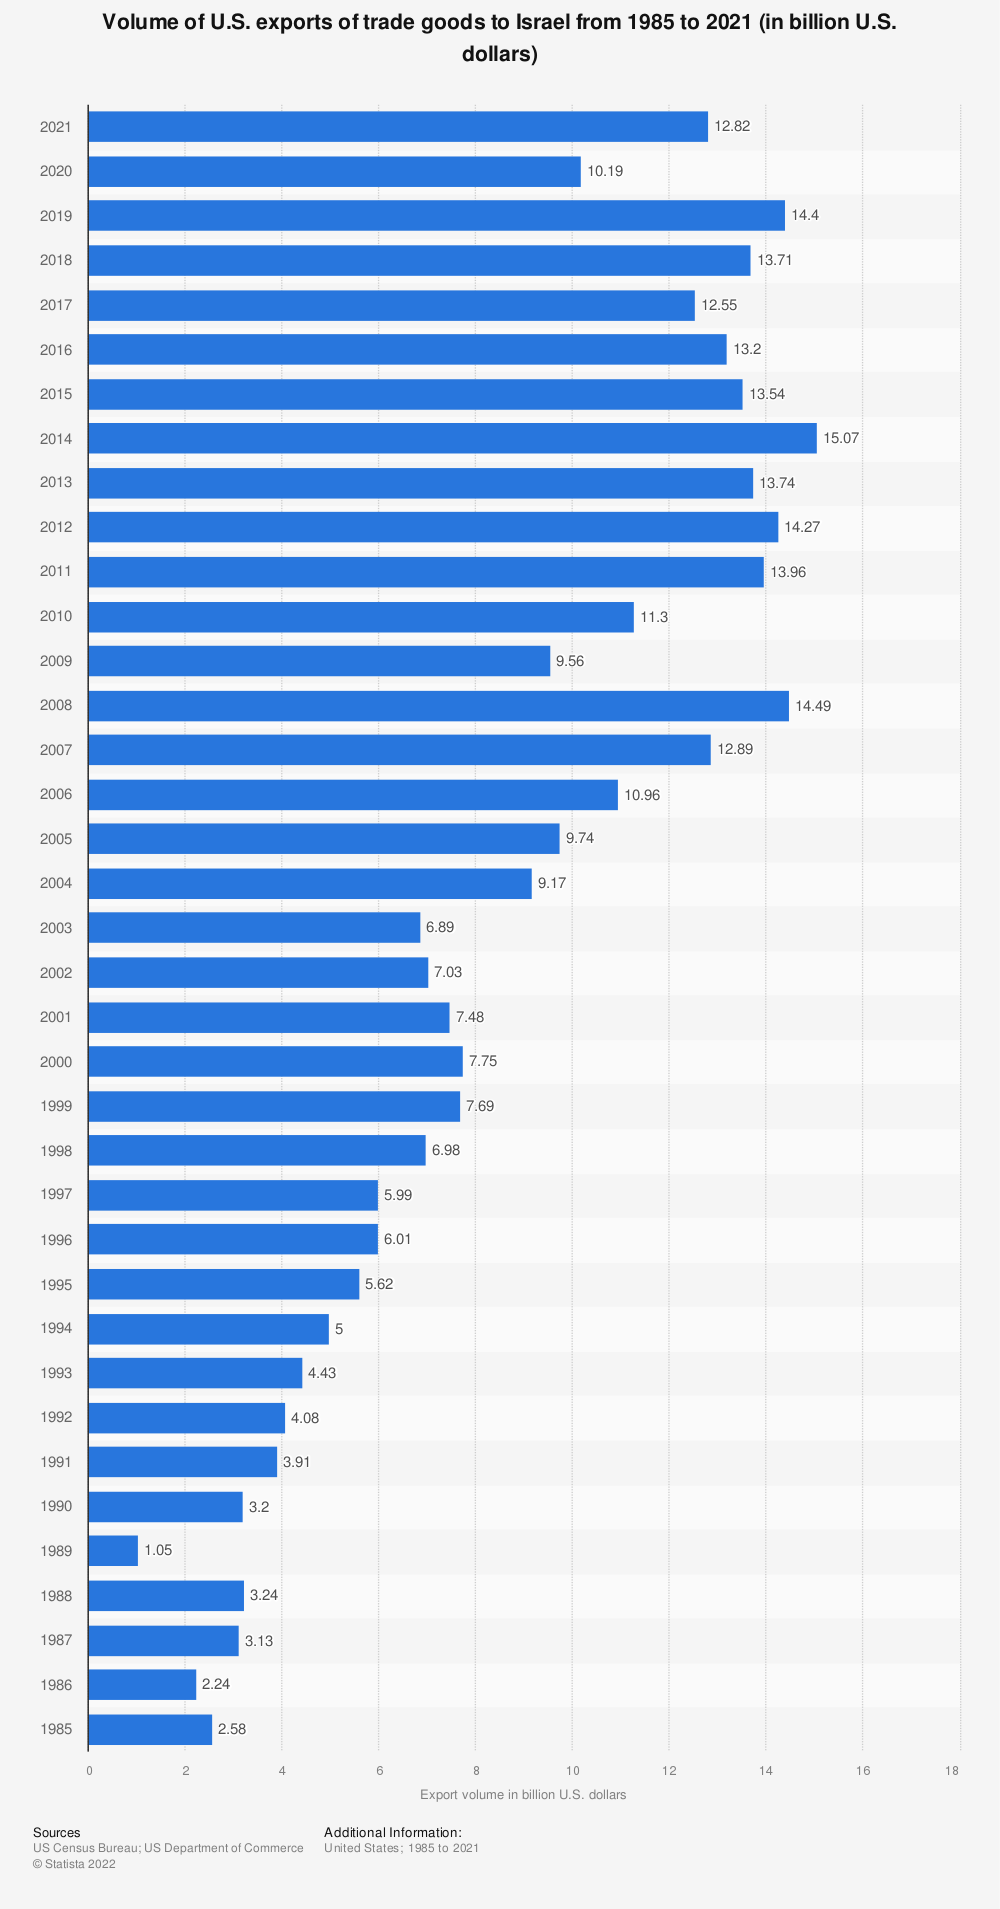 Statistic: Volume of U.S. exports of trade goods to Israel from 1985 to 2018 (in billion U.S. dollars) | Statista